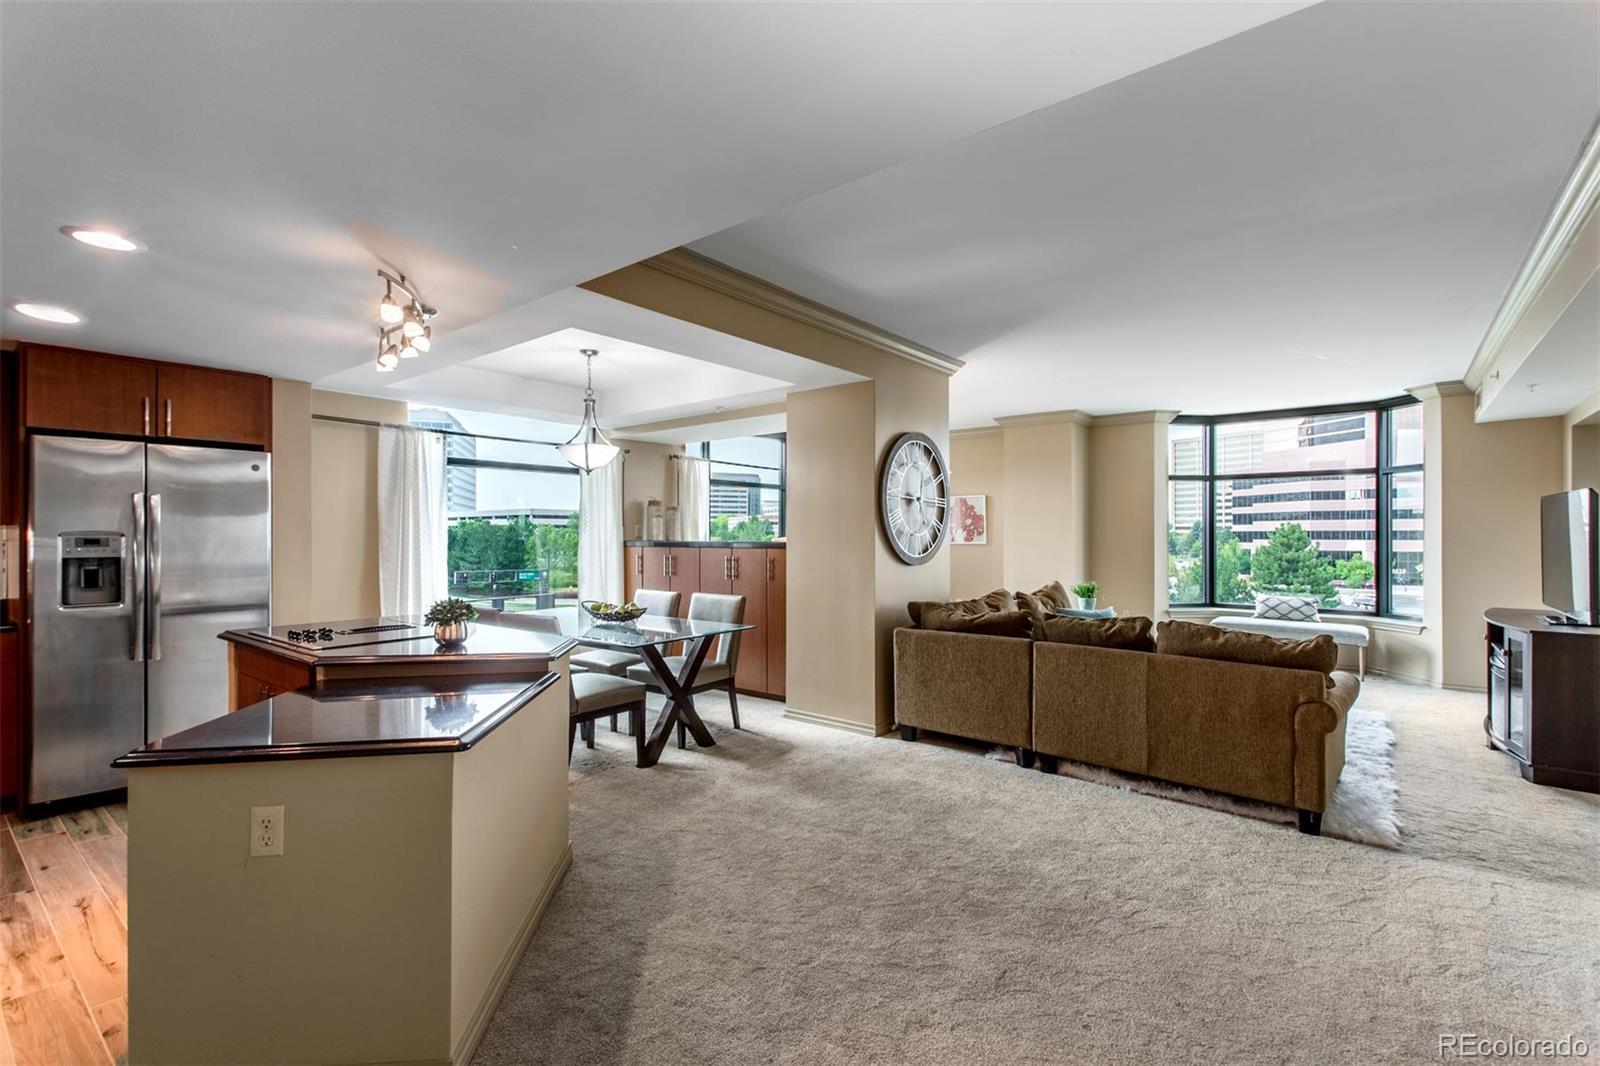 Spacious 1,100 square foot 1 bedroom condo in the impeccable Penterra Plaza! Located in the heart of the Denver Tech Center (DTC), this well maintained home is recently remodeled and features private balcony with mountain views. Upon entering this home, you are welcomed by a bright entryway flowing into the open concept floorplan. The kitchen features stainless steel appliances, an oversized island and granite countertops. The kitchen seamlessly connects to the dining room with large windows allowing an abundance of a natural light. The living room and den combine to create a spacious living space, that feels cozy with a comfortable nook to read a book, or with plenty of room for a home office. The recently remodeled bathroom has plenty of cabinet space and a large granite vanity with dual sinks. The master bedroom has a large walk-in closet, and access to the West facing balcony! Other highlights of home include in unit stackable laundry, reserved garage parking, and reserved storage space. Penterra Plaza is a renowned building including luxurious amenities like an onsite concierge, impressive fitness facility, business lounge, community room and 2 rentable guest suites available for just $80/night. Truly move-in ready this low maintenance condo is perfect for a luxurious, worry-free 2nd home, long term rental or full time residence for the busy professional.